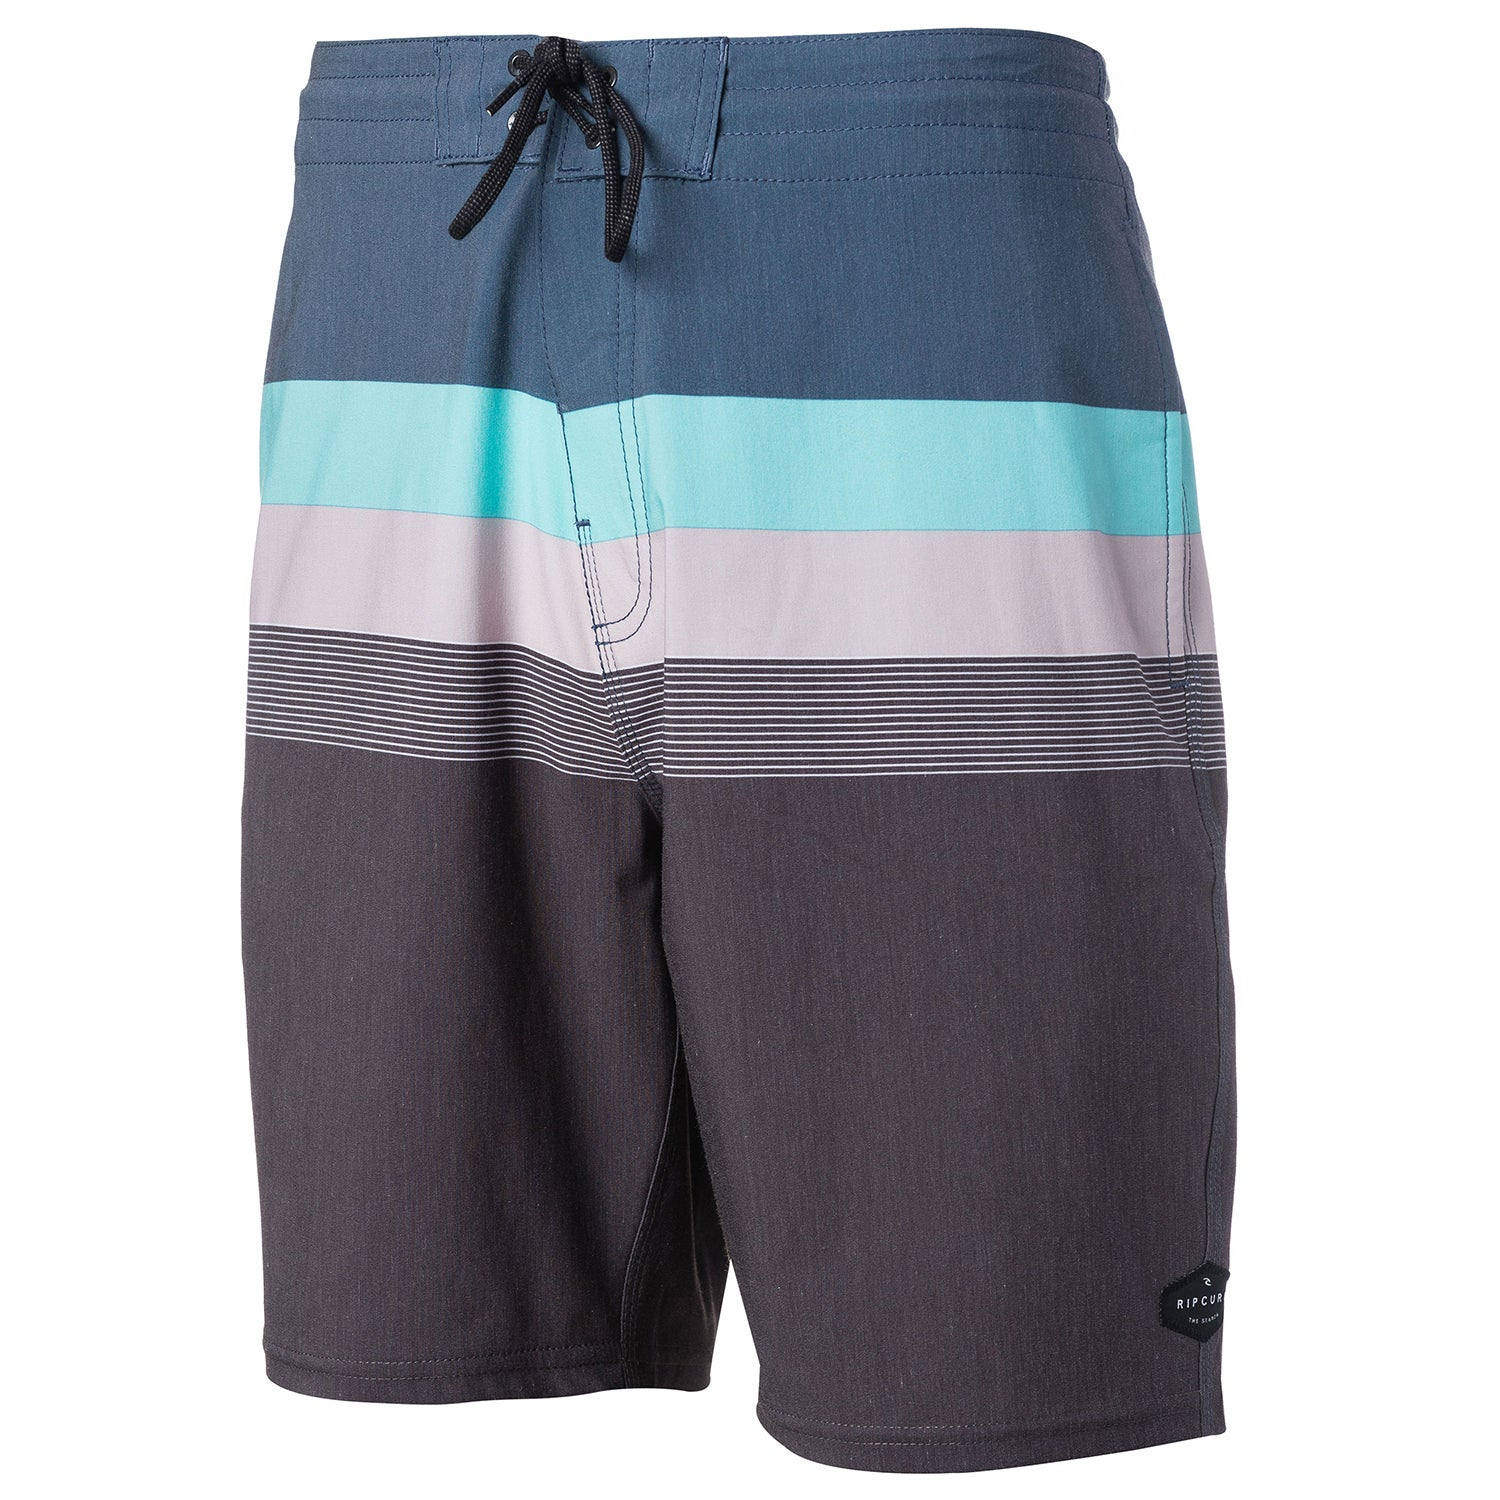 f776f04dfc Rip Curl Rapture Layday 19in Mens Shorts Boardshorts - Black All ...